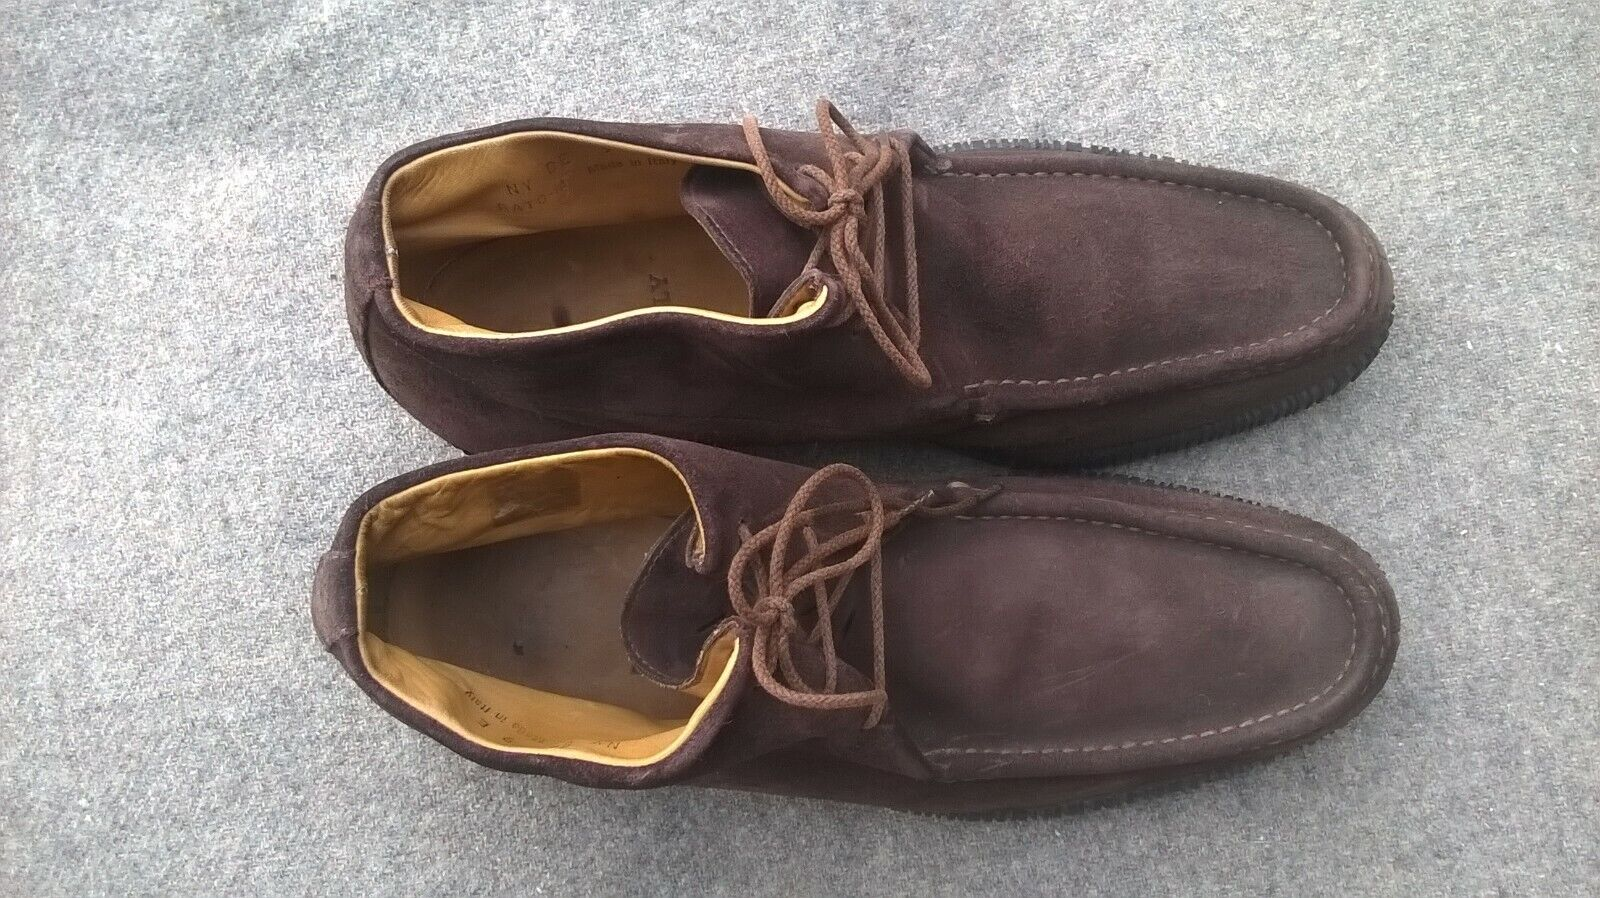 MENS BALLY BATO-M BROWN SUEDE BOOTS SHOES SIZE 9 E CASUAL FORMAL